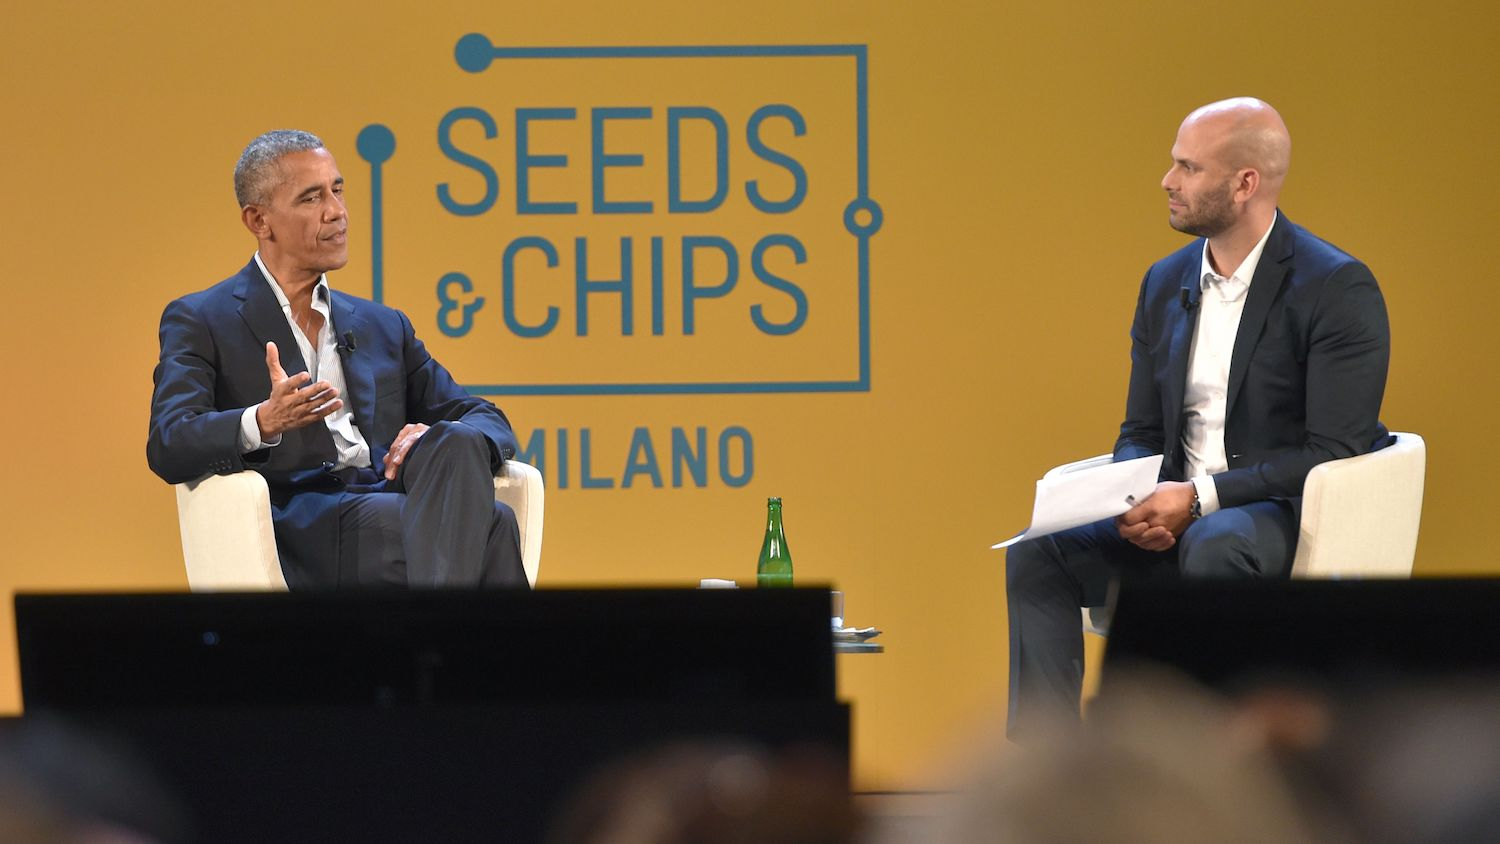 Obama Seeds and Chips speech